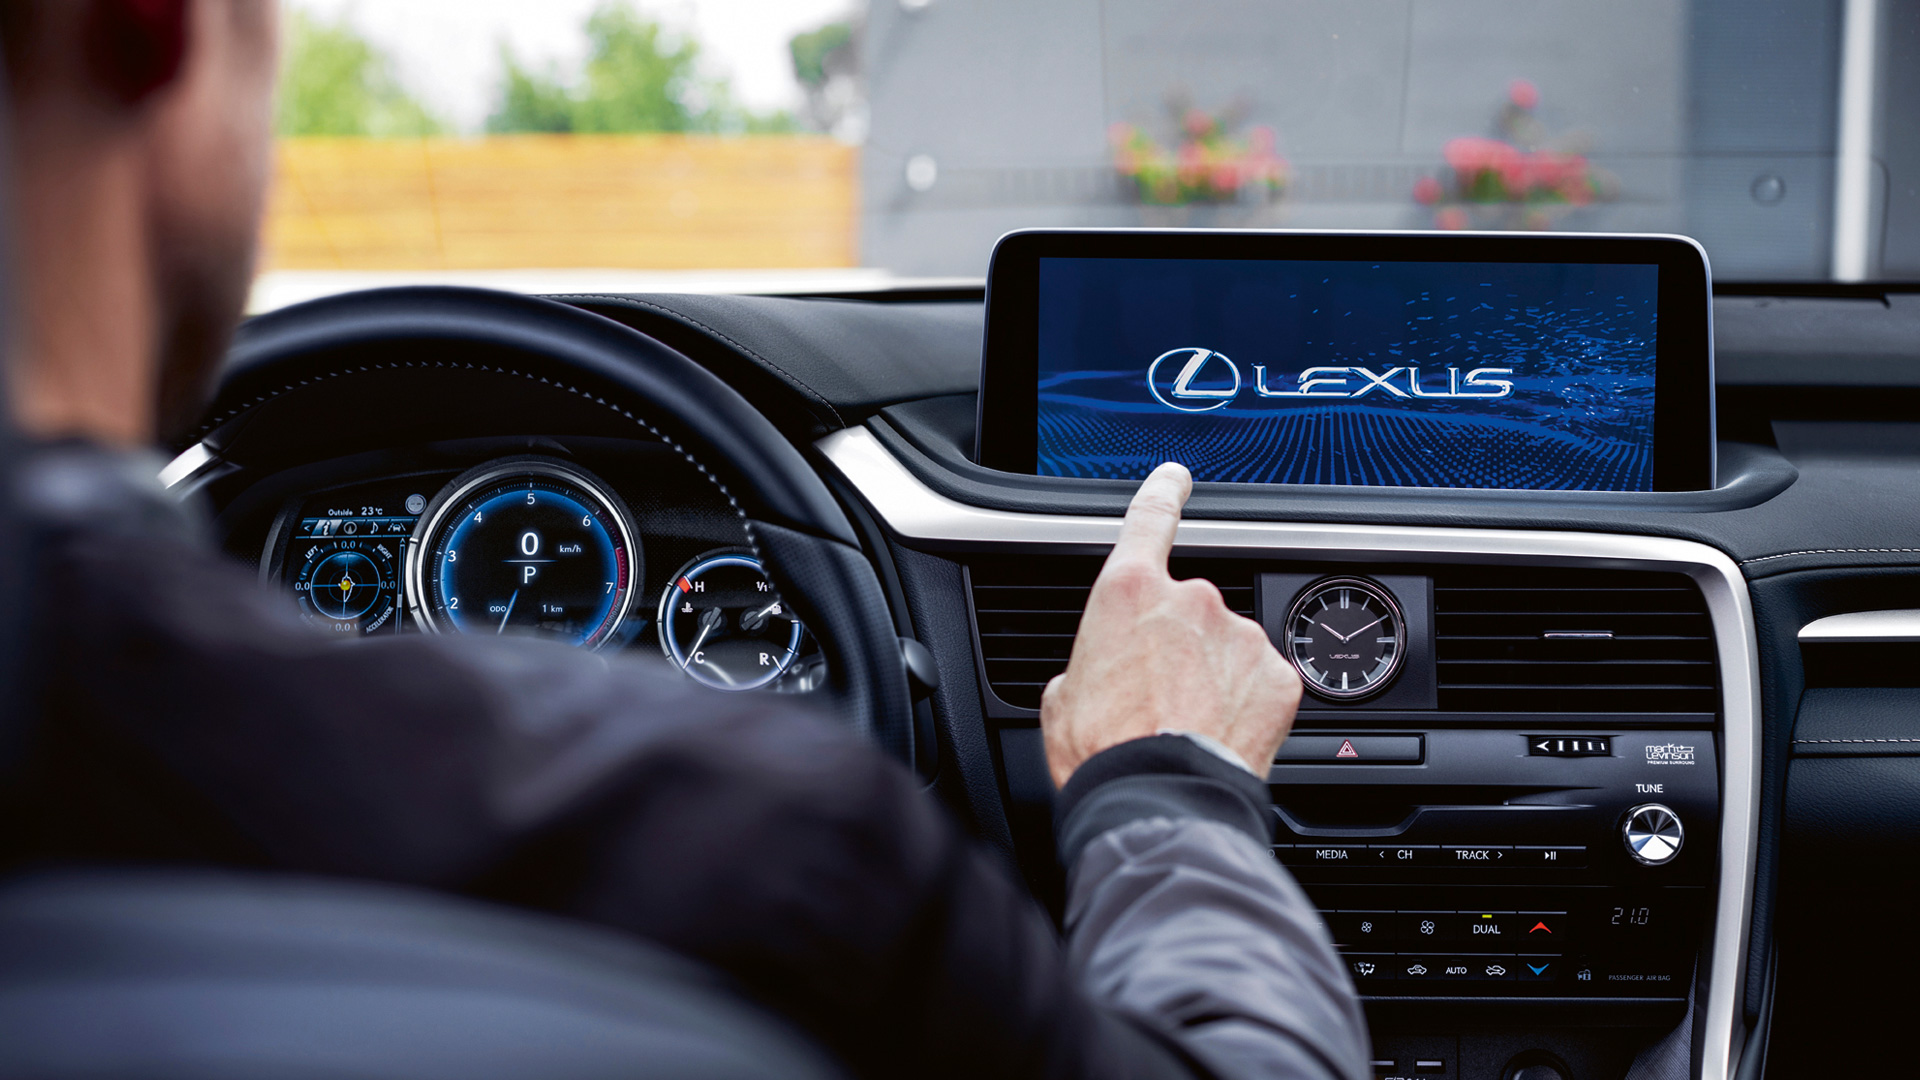 lexus connected accessories landscape